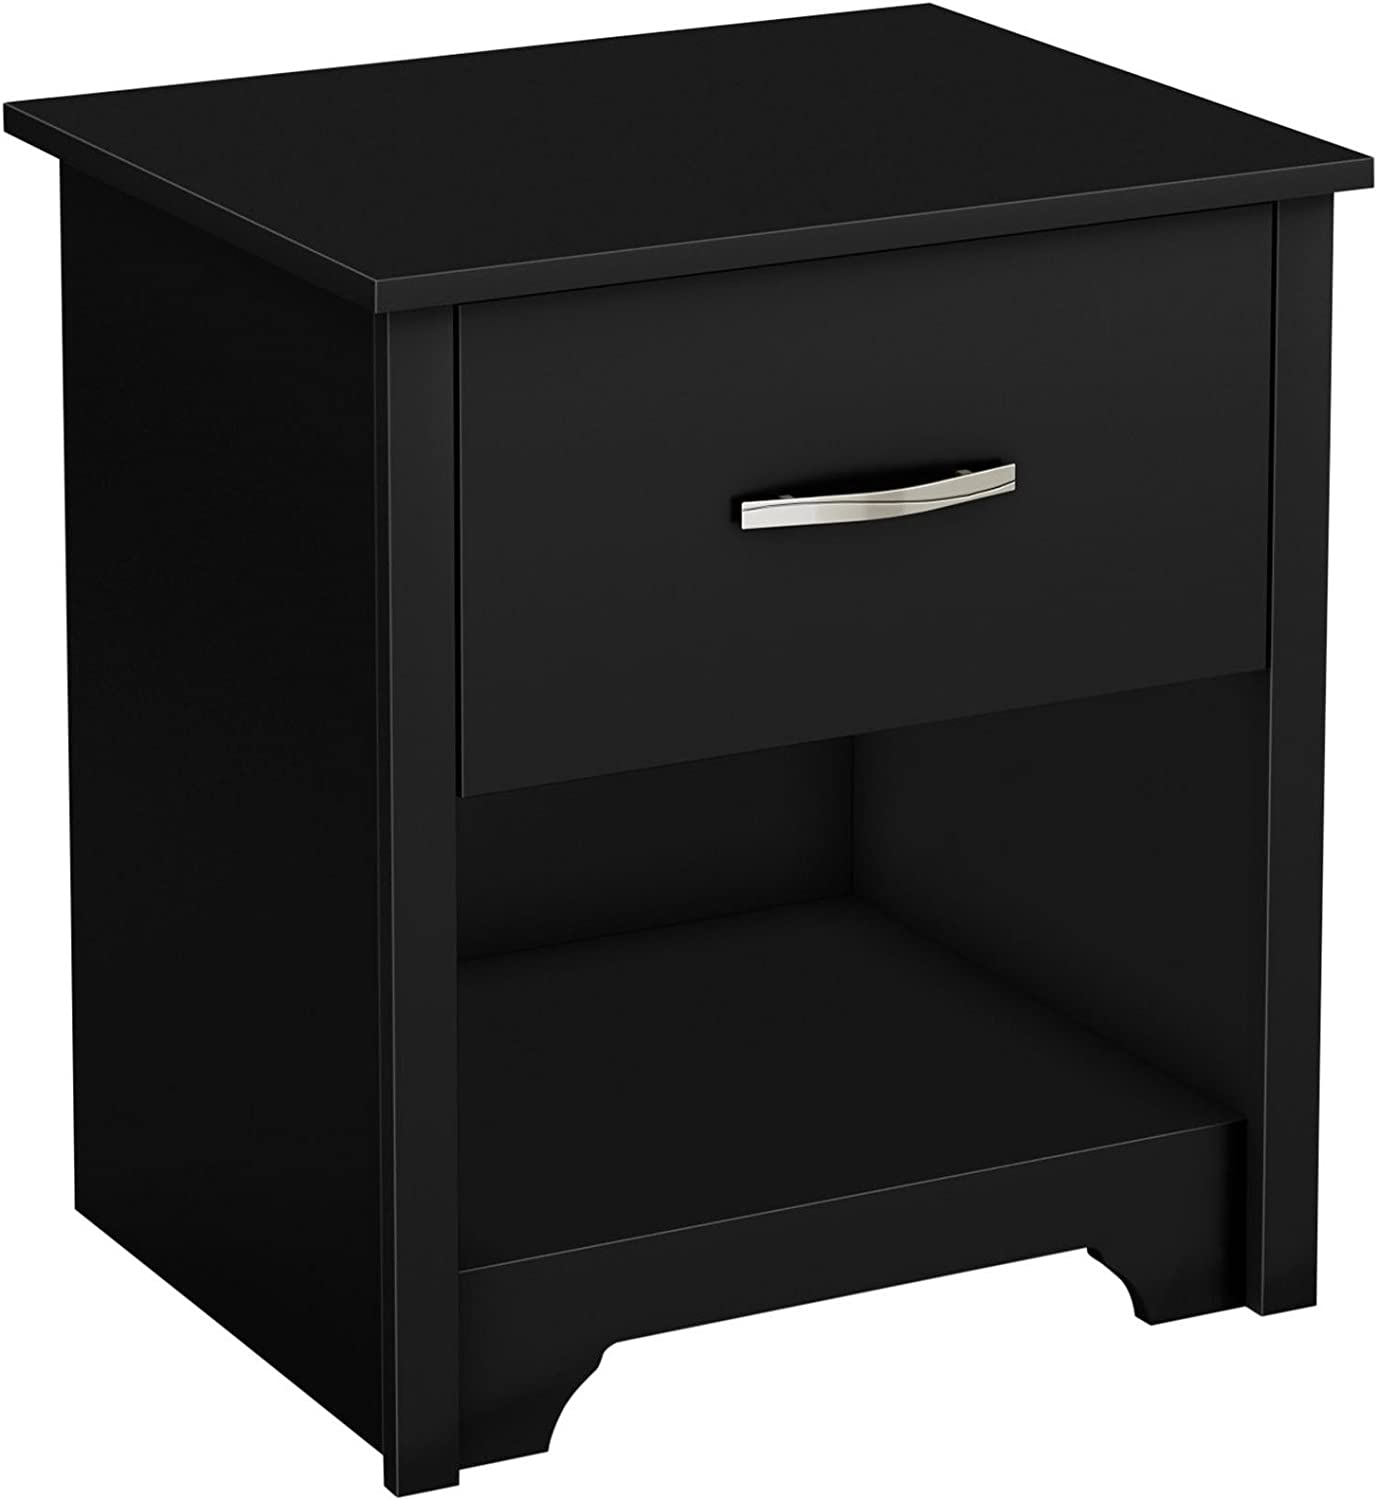 South Shore Fusion Nightstand, Pure Black with Grooved Metal Handles